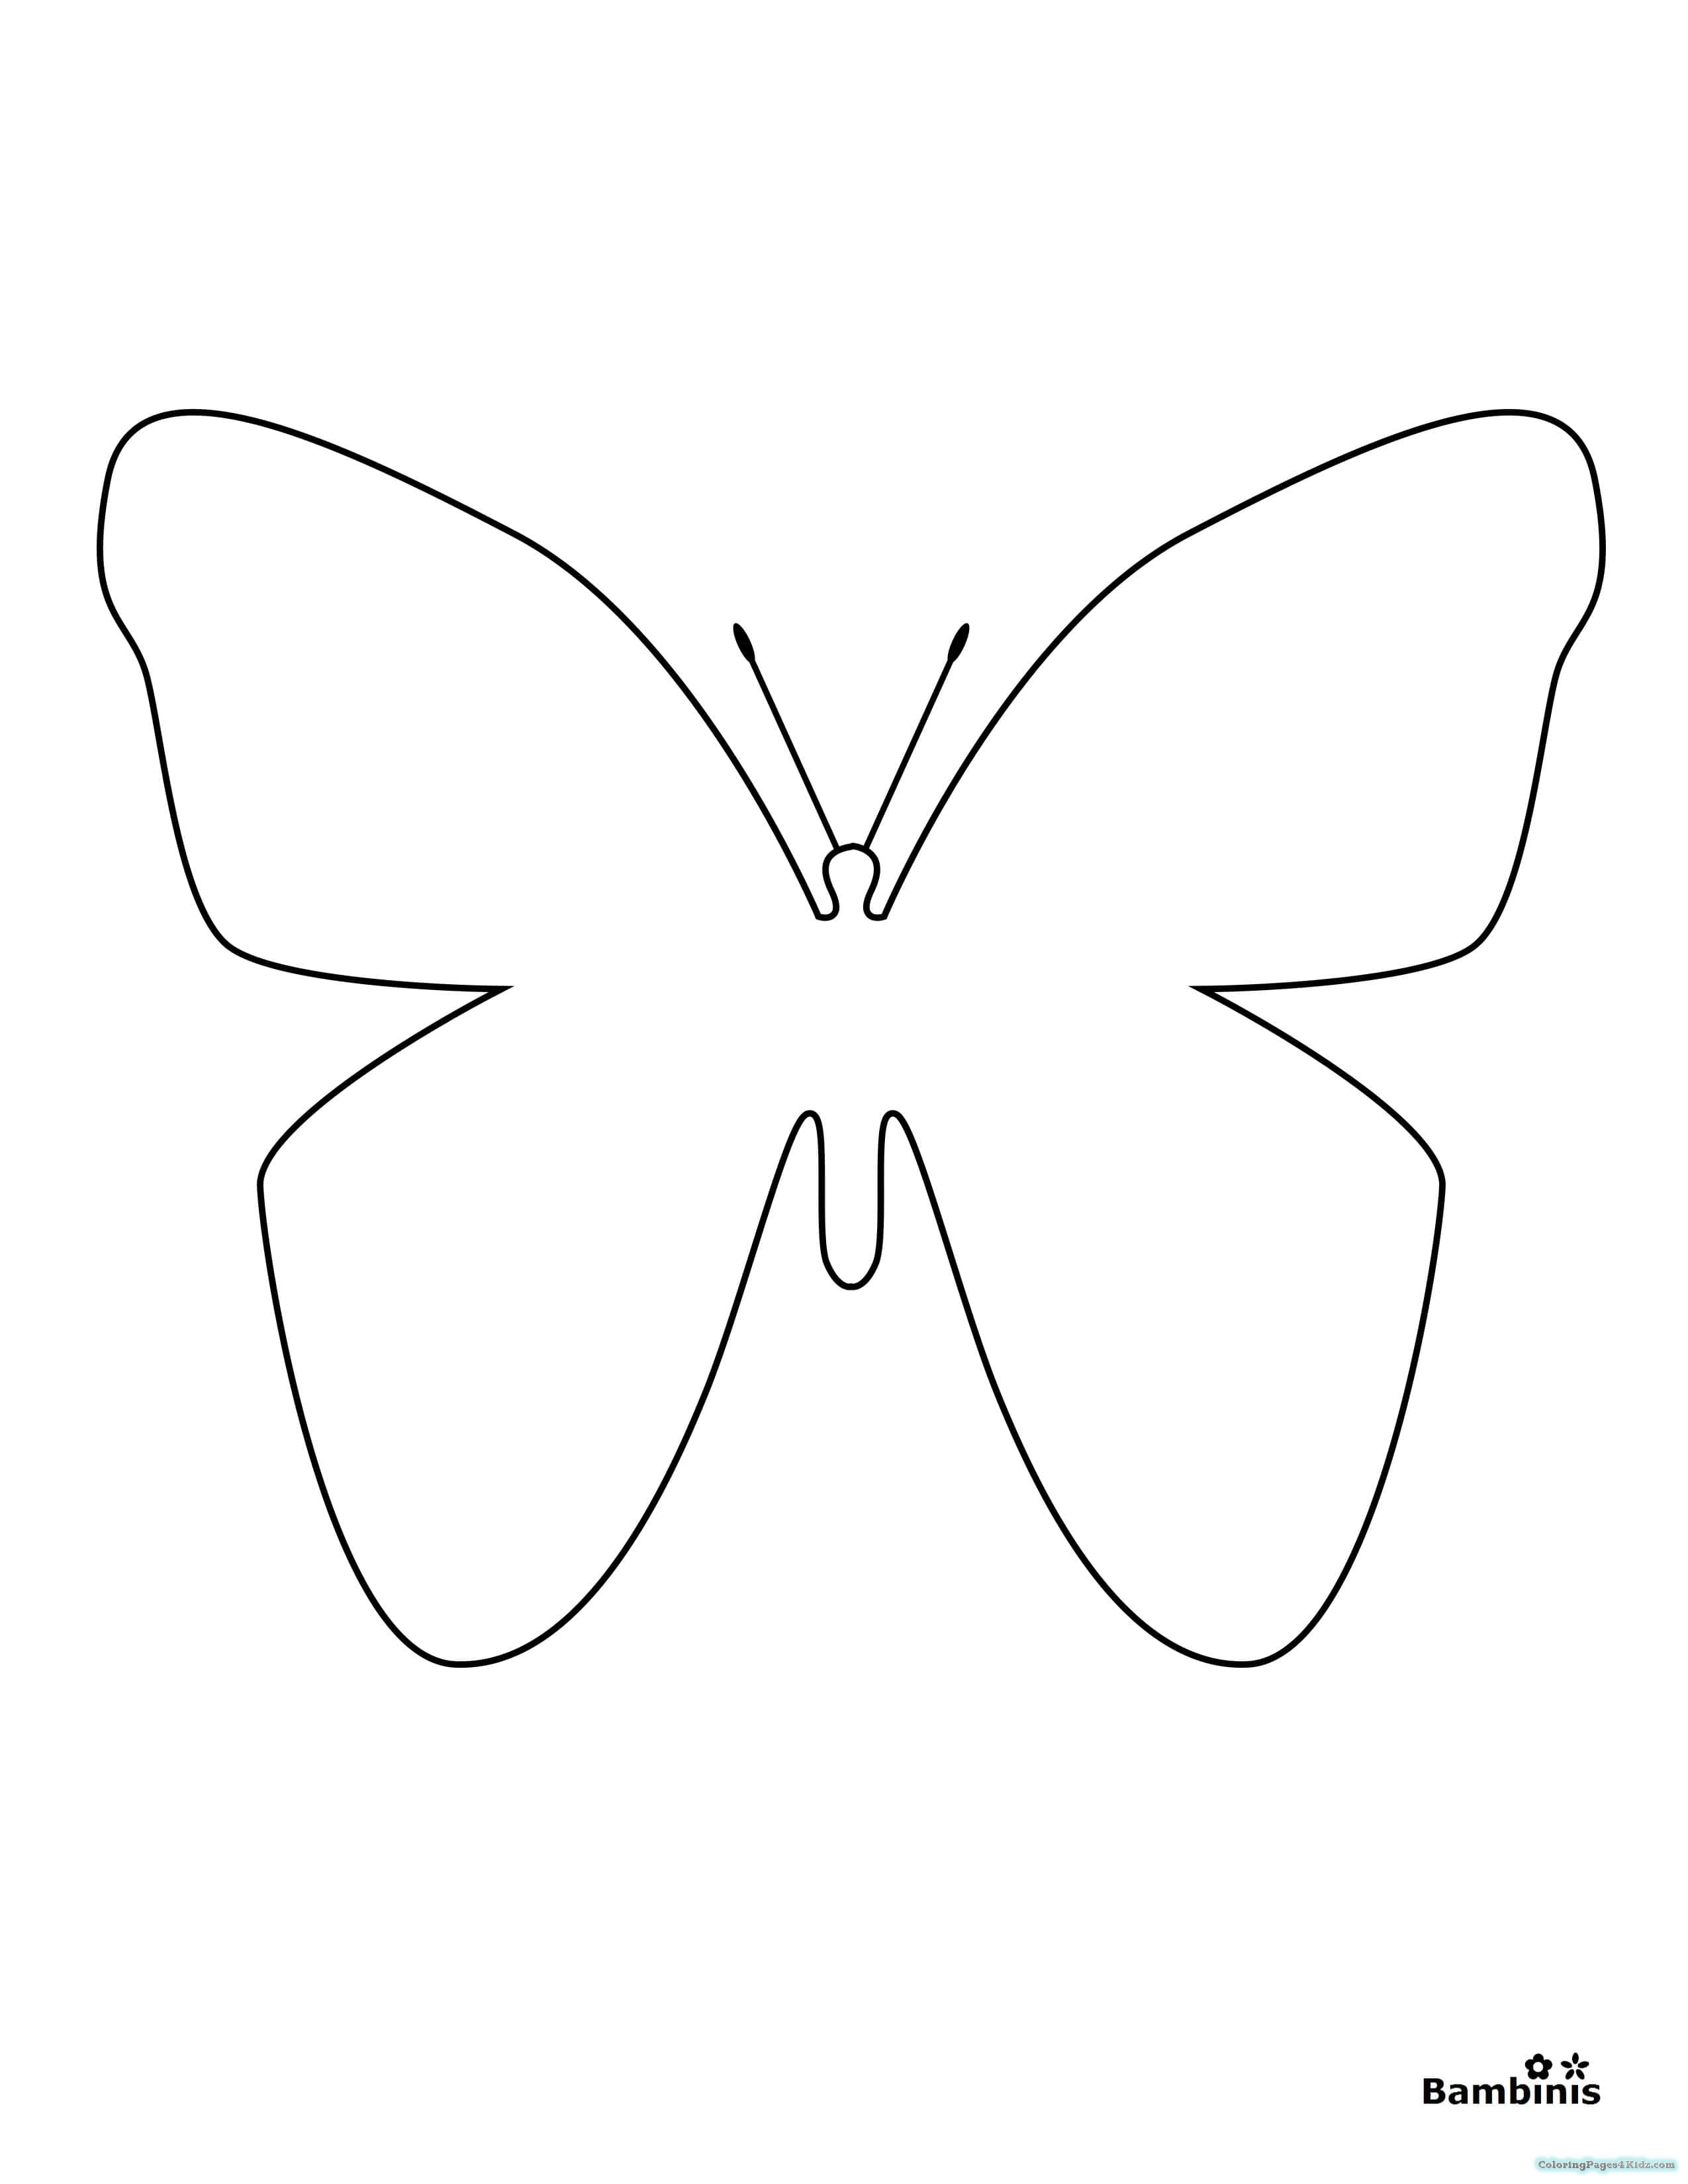 simple easy butterfly coloring pages fresh coloring pages butterfly for you easy coloring butterfly simple easy pages coloring